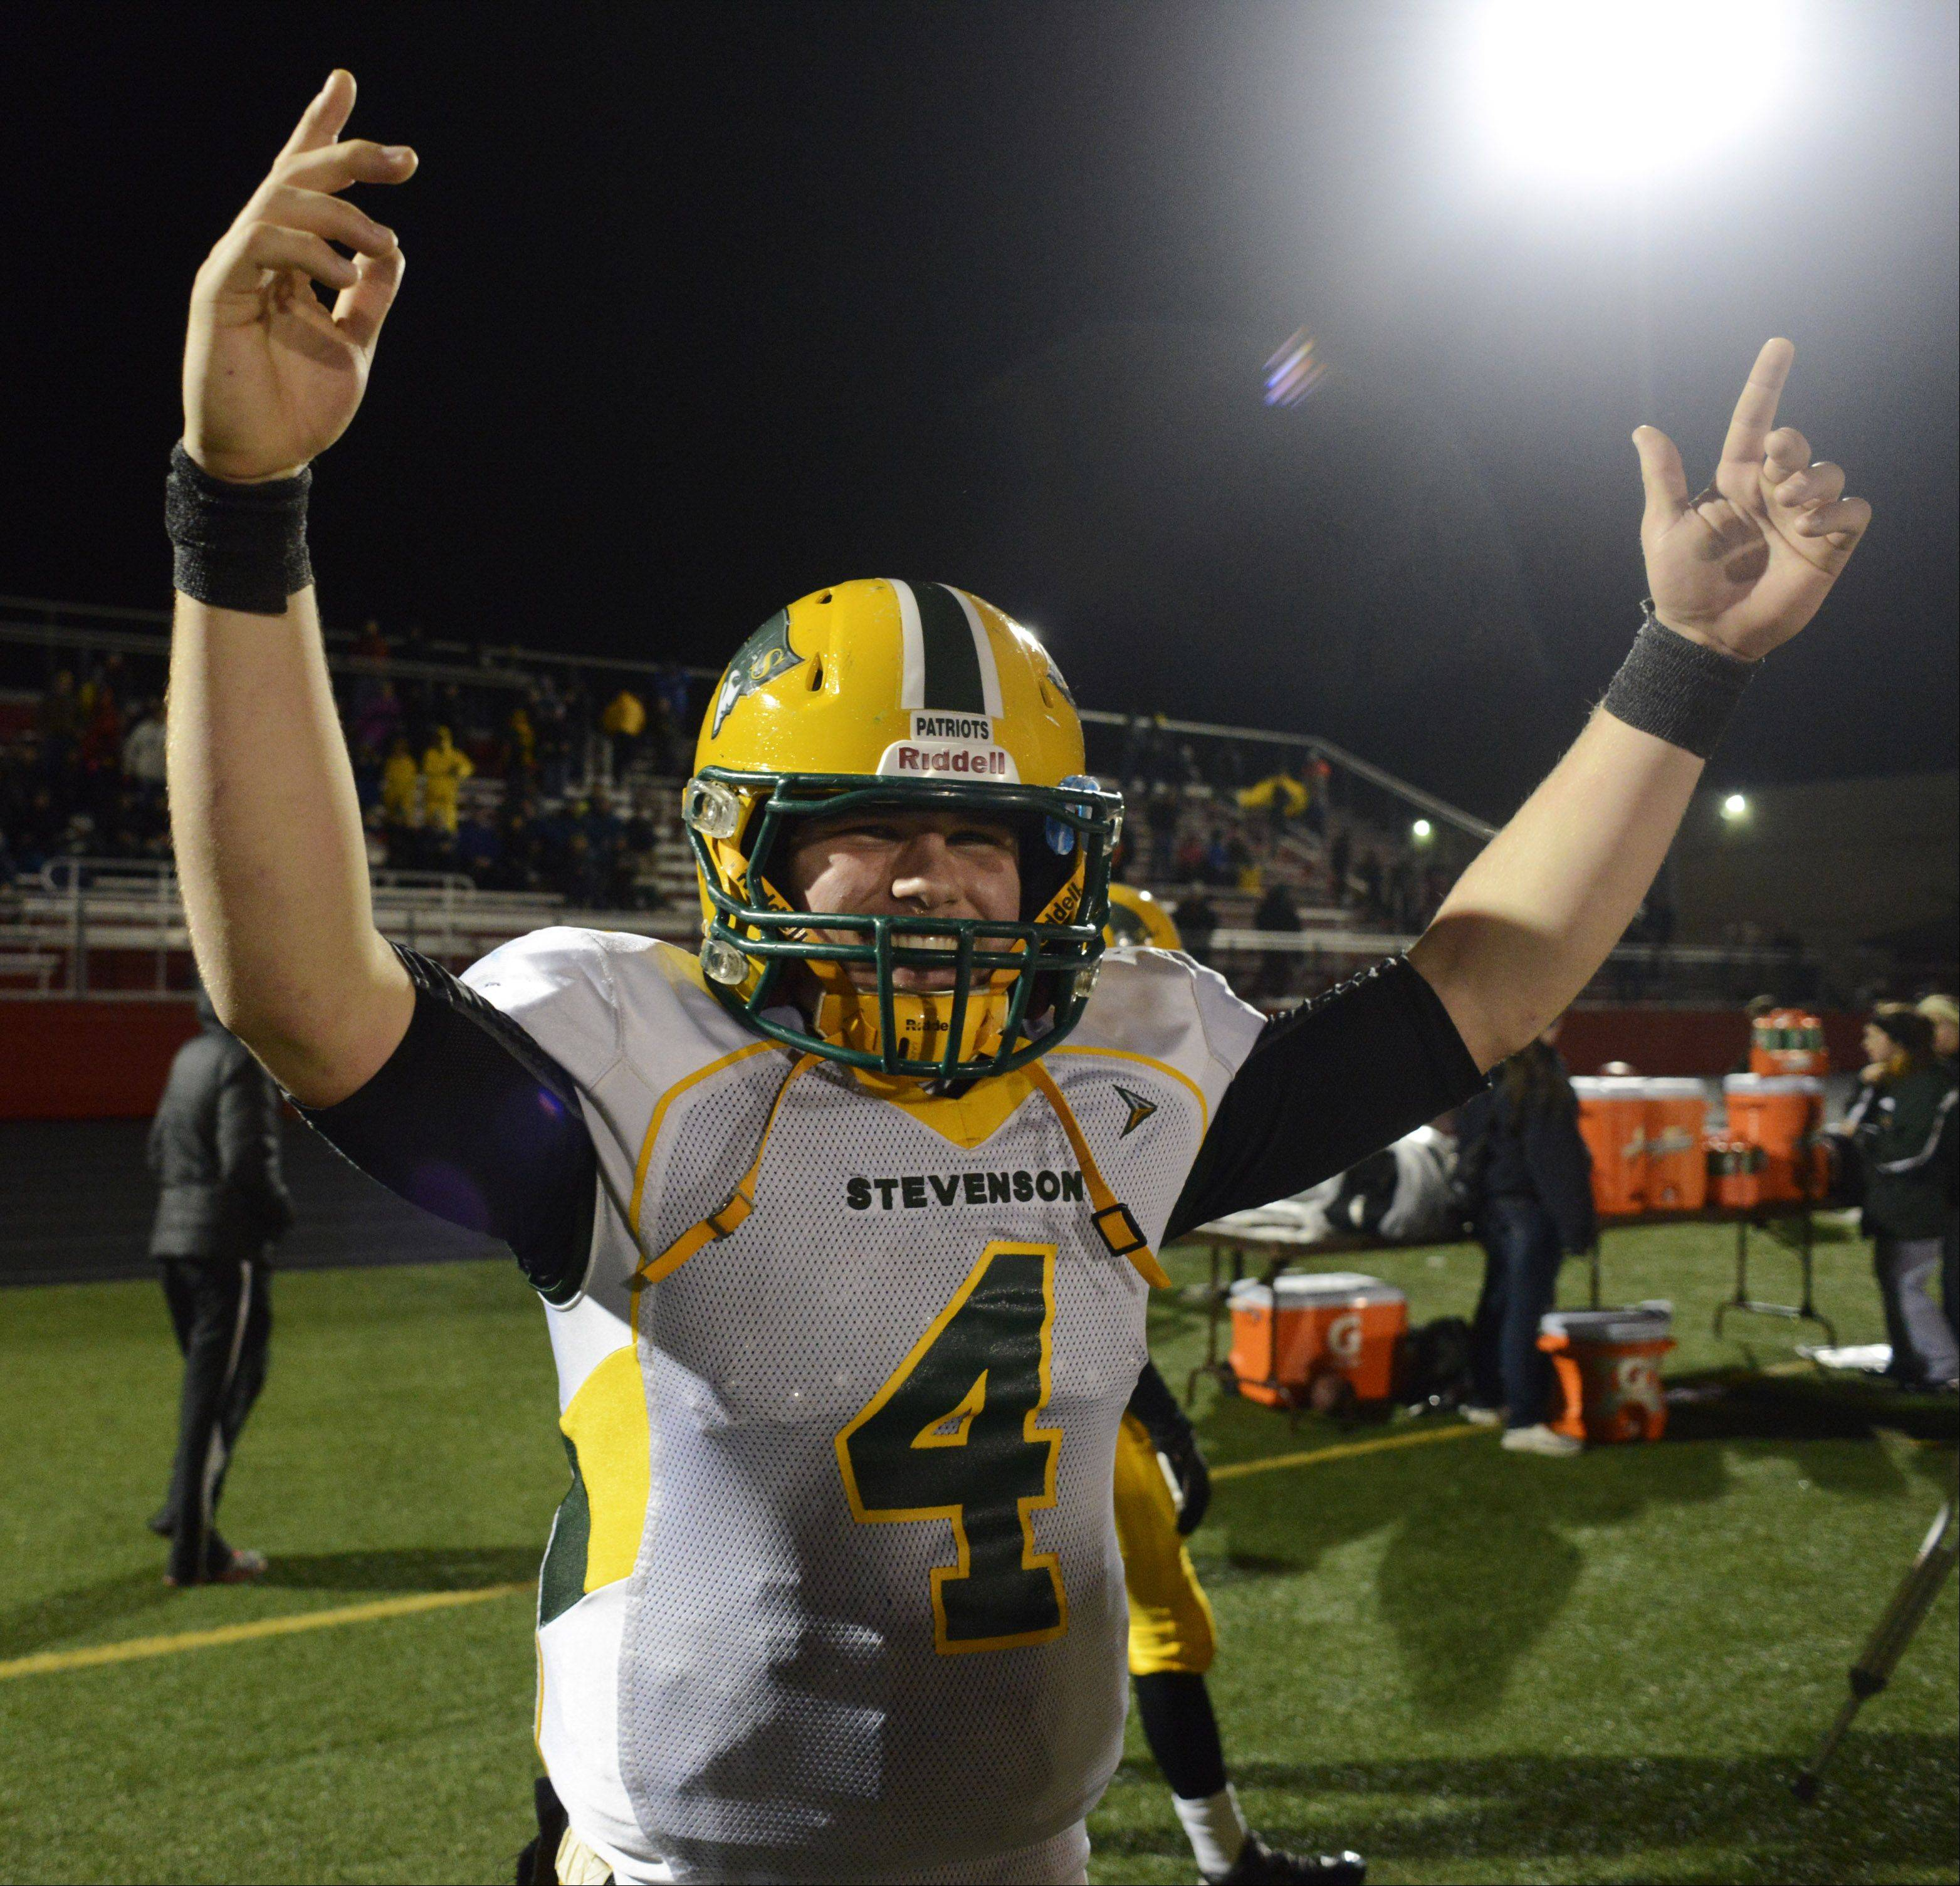 Stevenson quarterback Willie Bourbon celebrates as the clock winds down in the closing seconds of Saturday's 14-0 victory at Barrington.